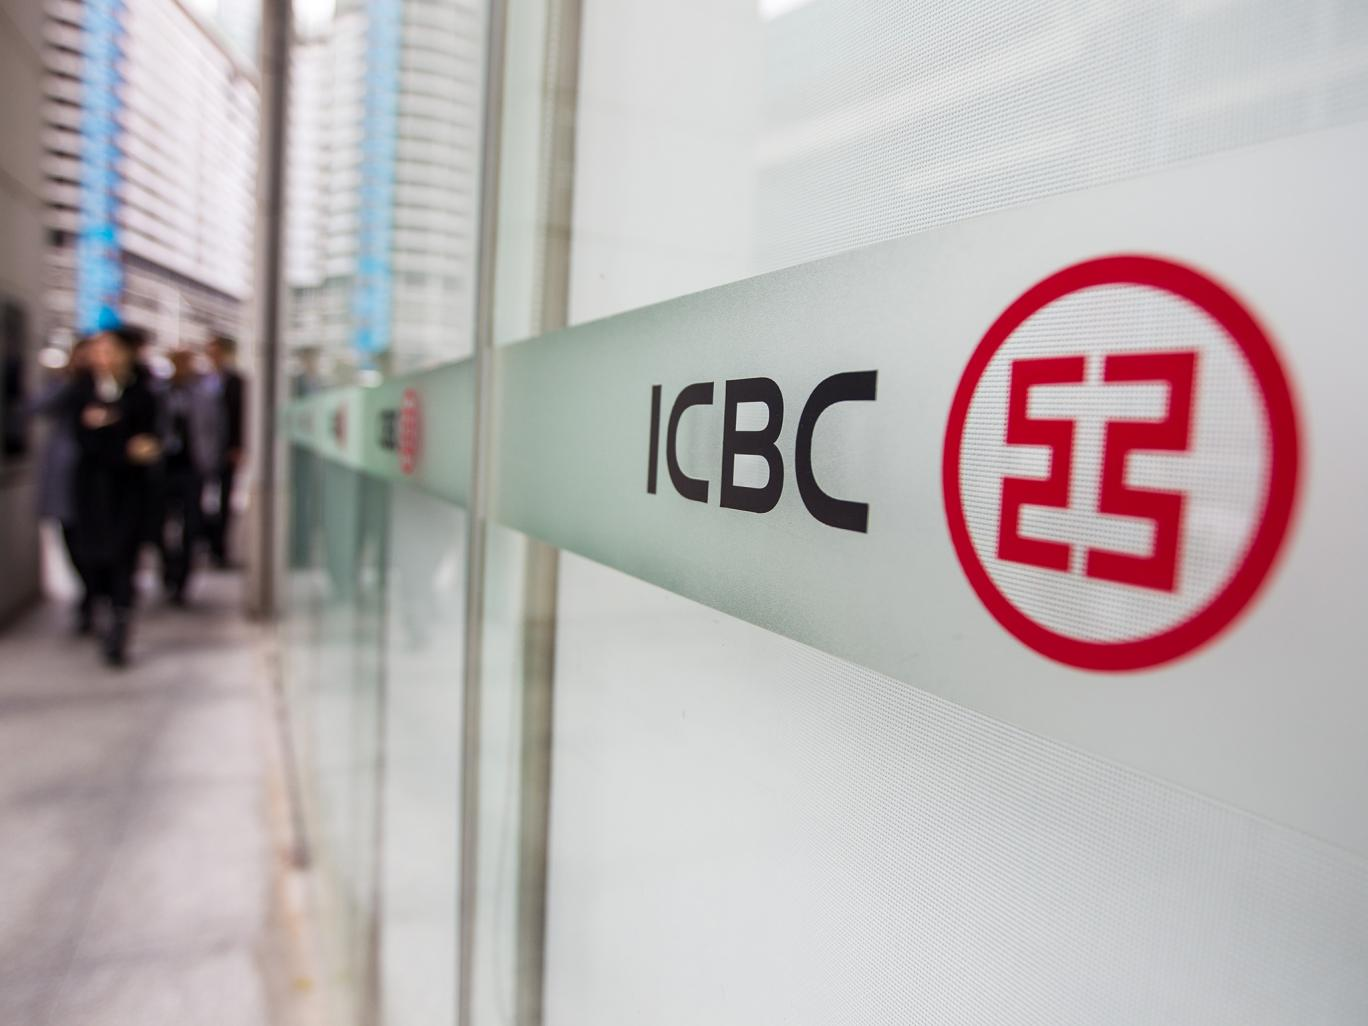 ICBC Standard Bank Announces New Hire